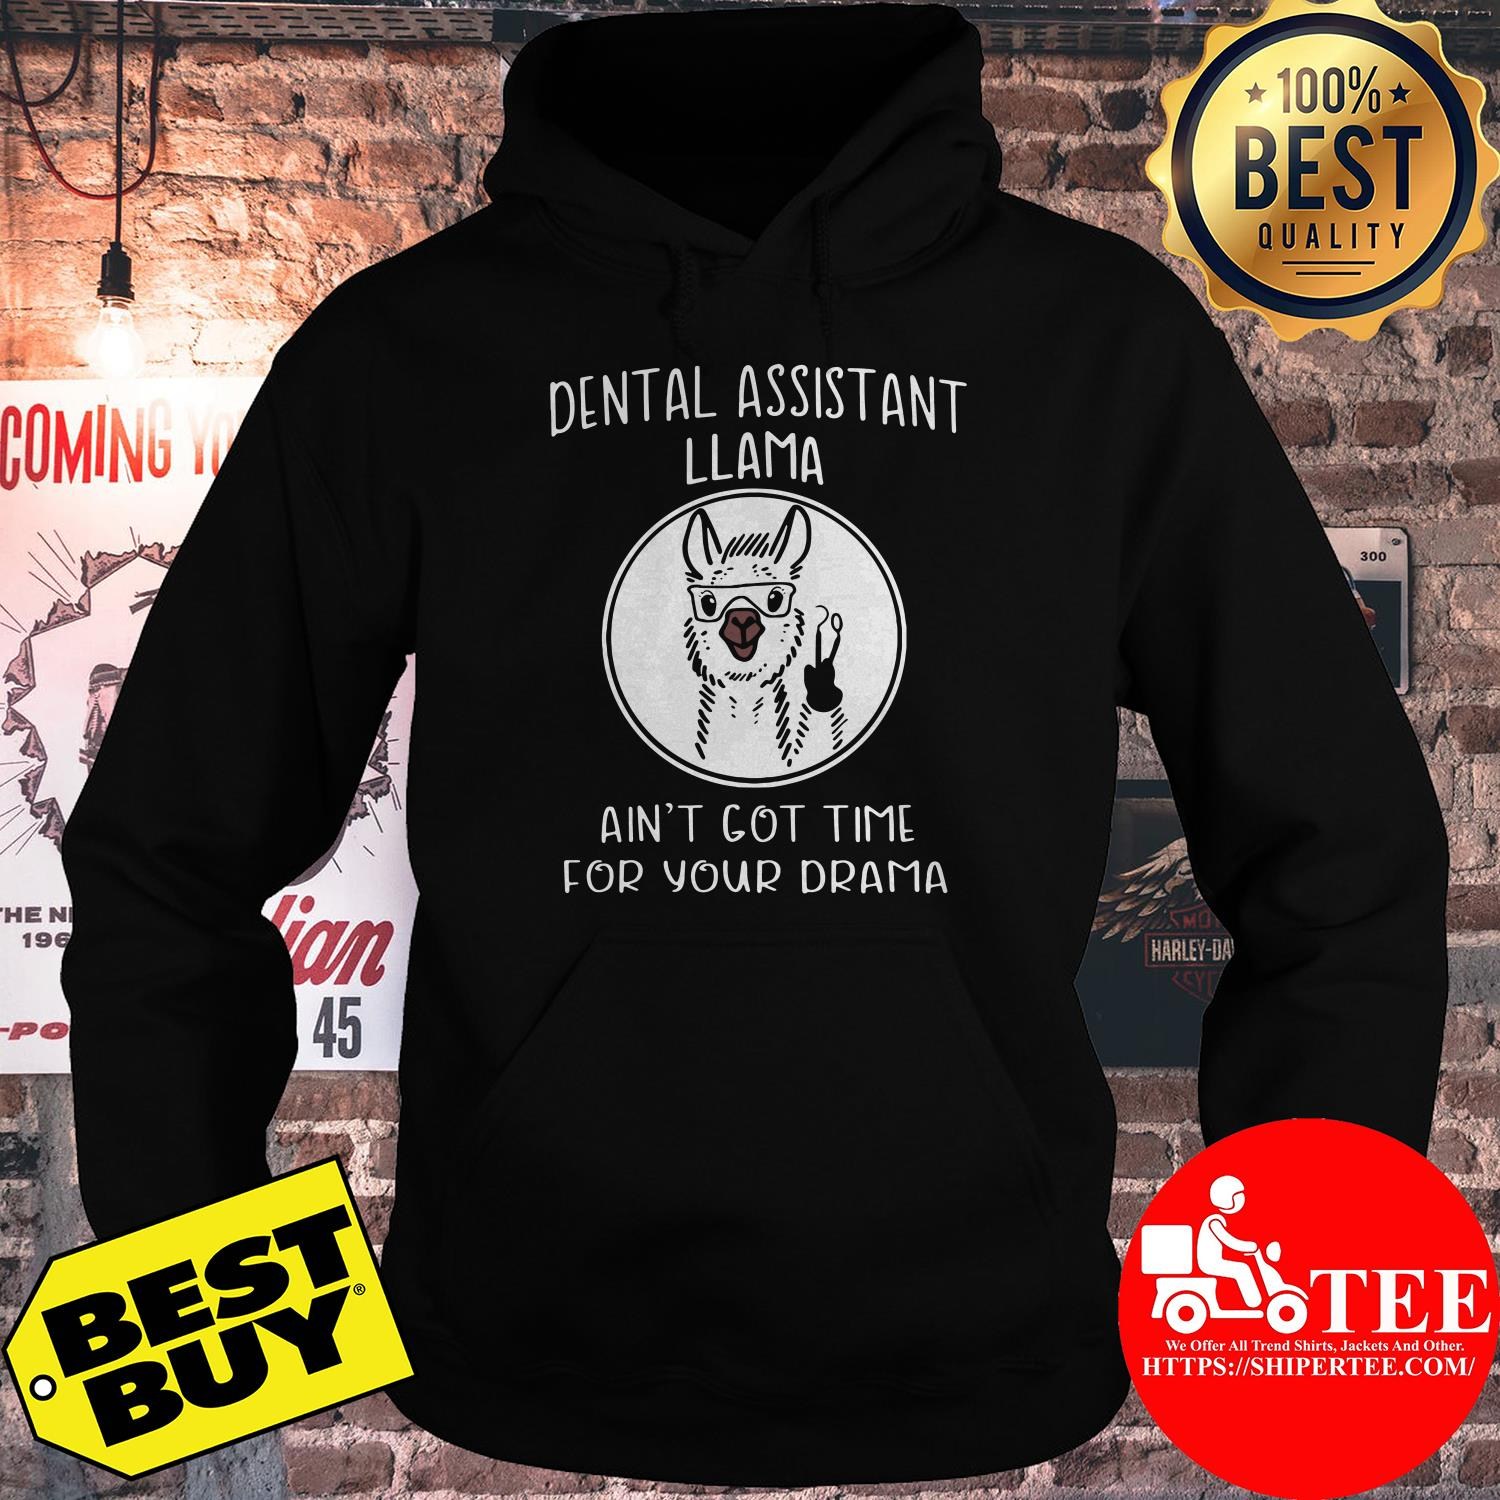 Dental assistant Llama ain't got time for your drama sheep shirt